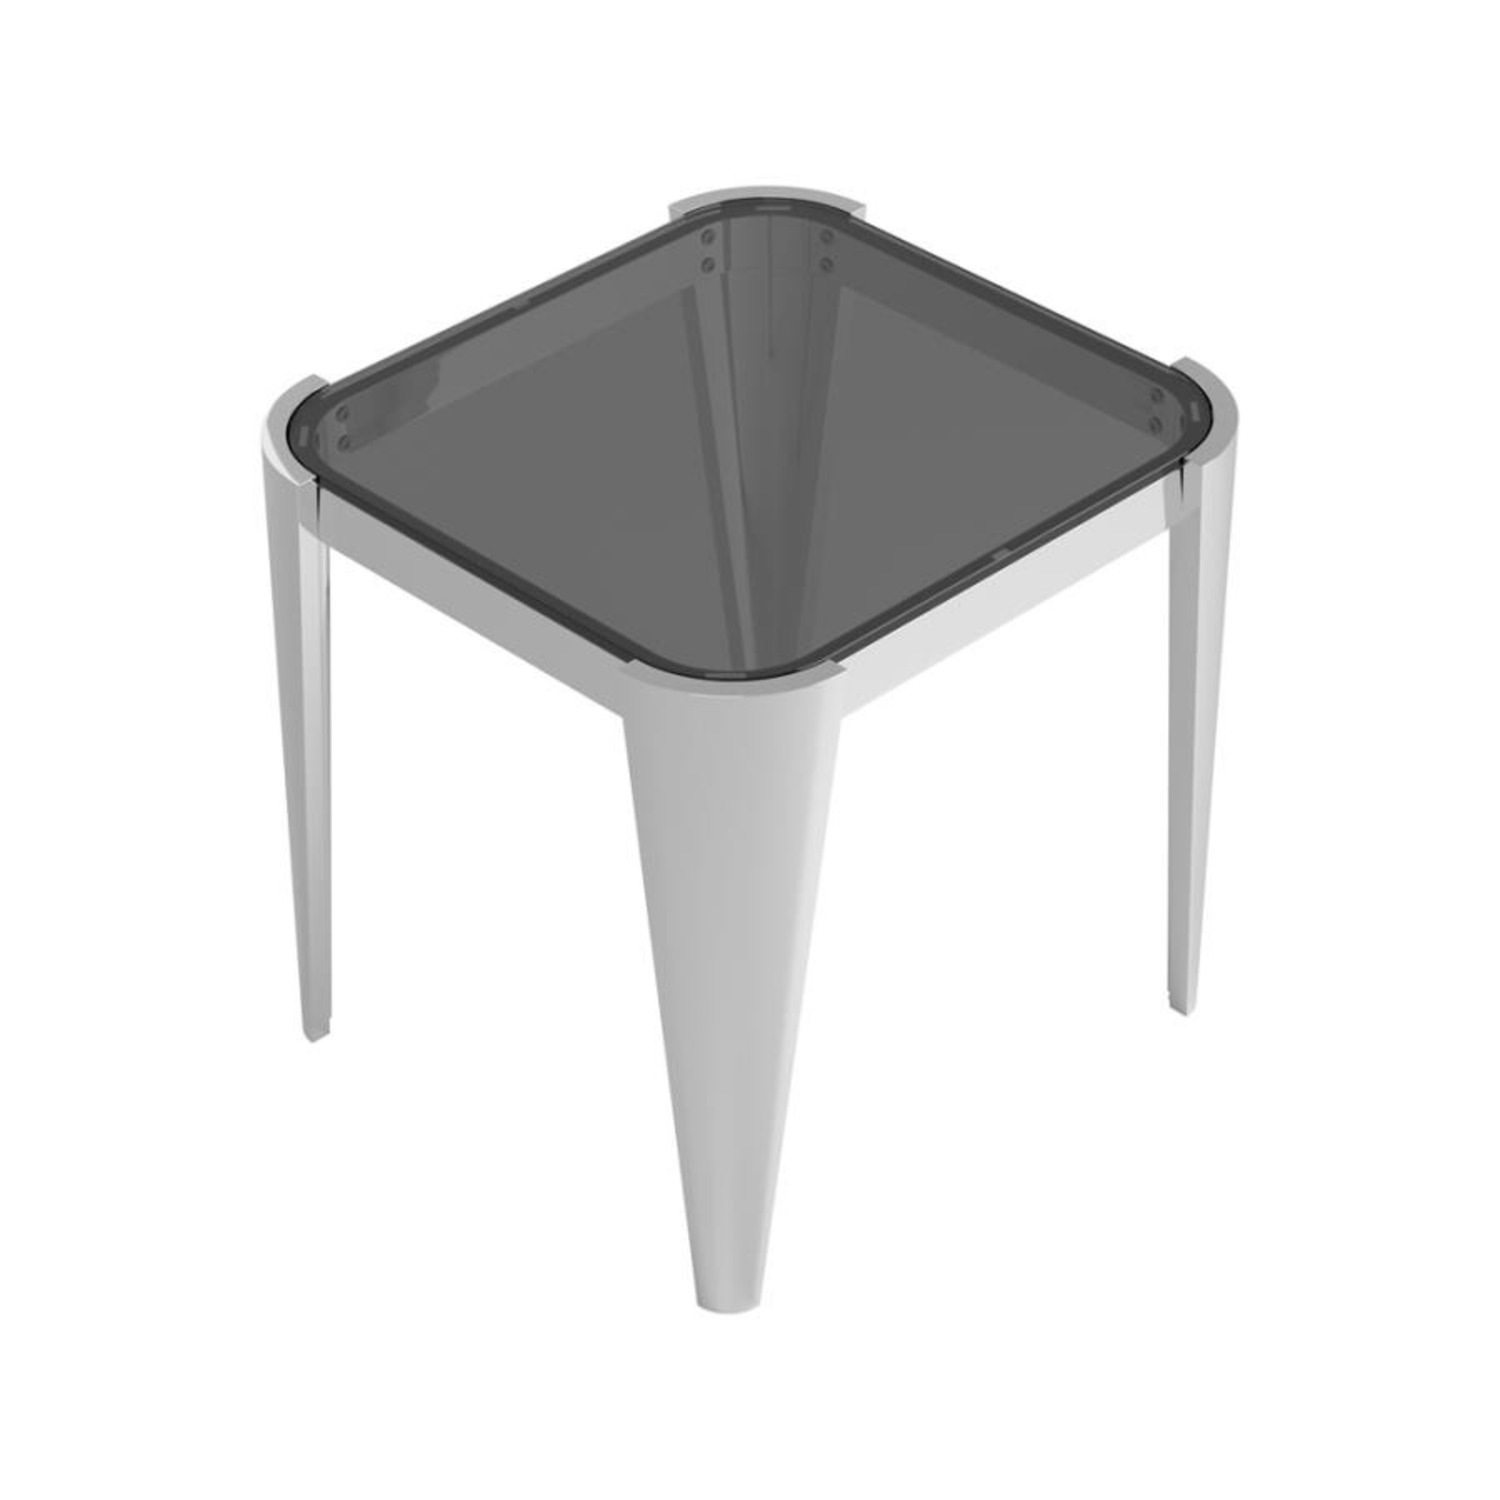 End Table In Silver W/ Grey Tempered Glass Top - image-0